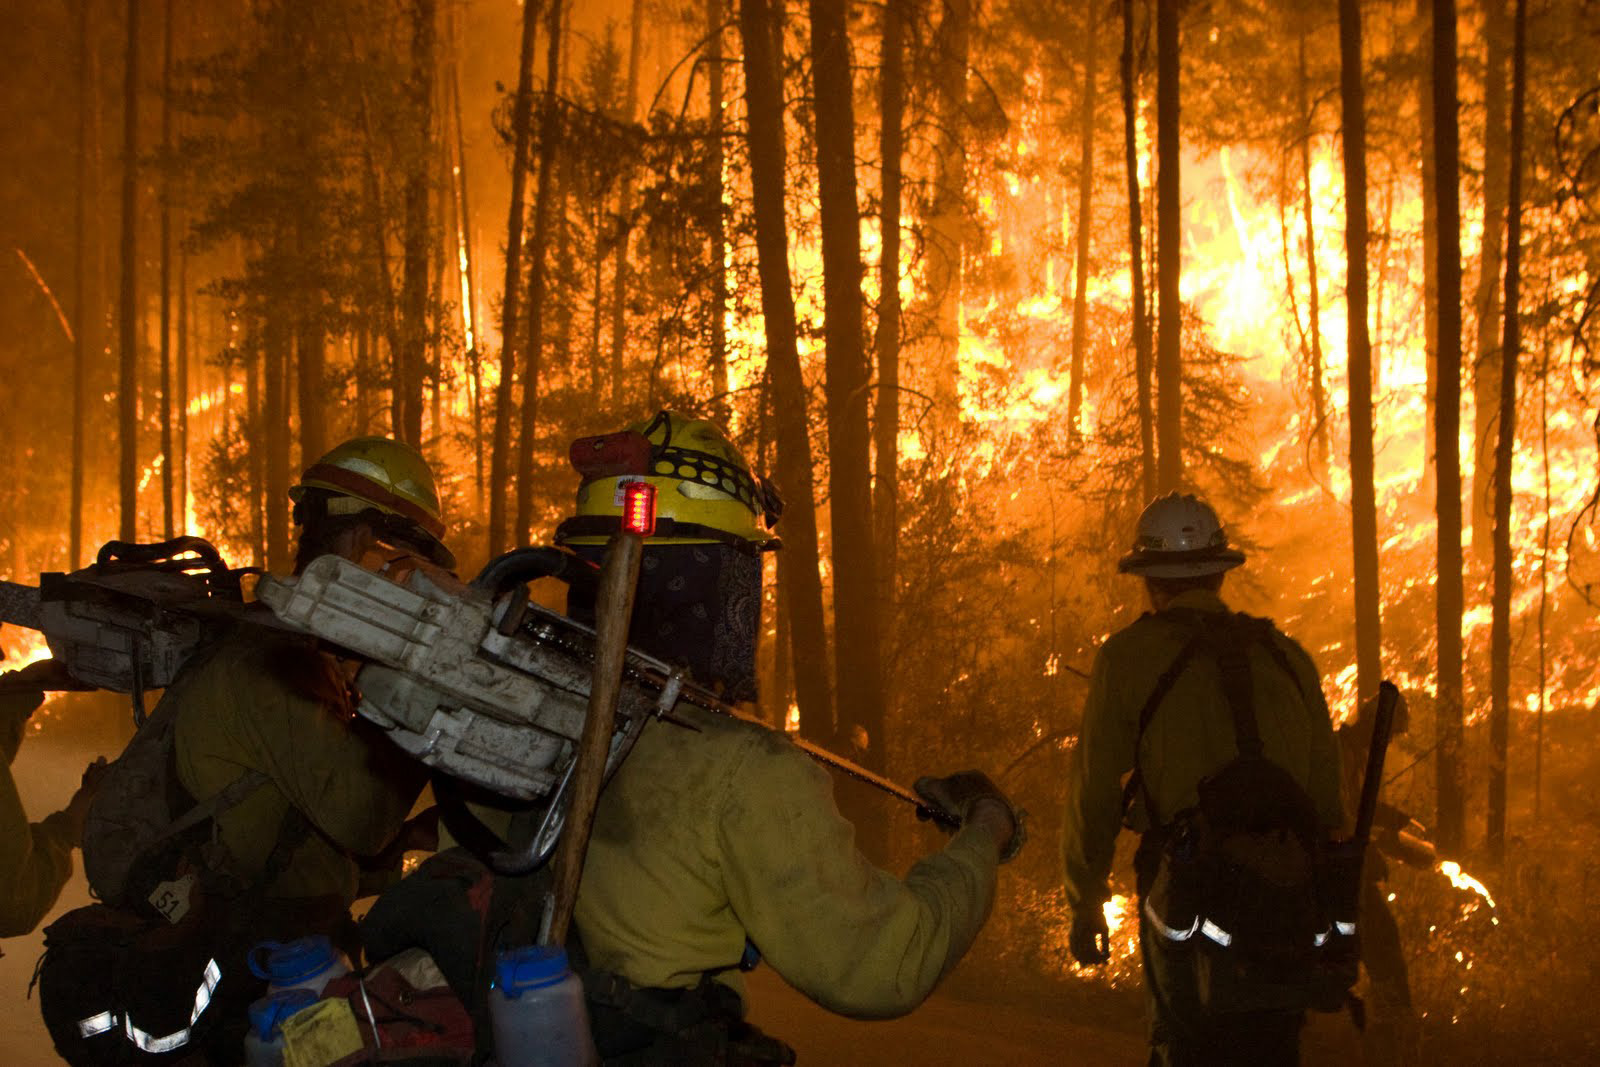 Wildland firefighters are tasked with combating wildfires and preventing future fires from starting. Arson places these brave men and women at risk.